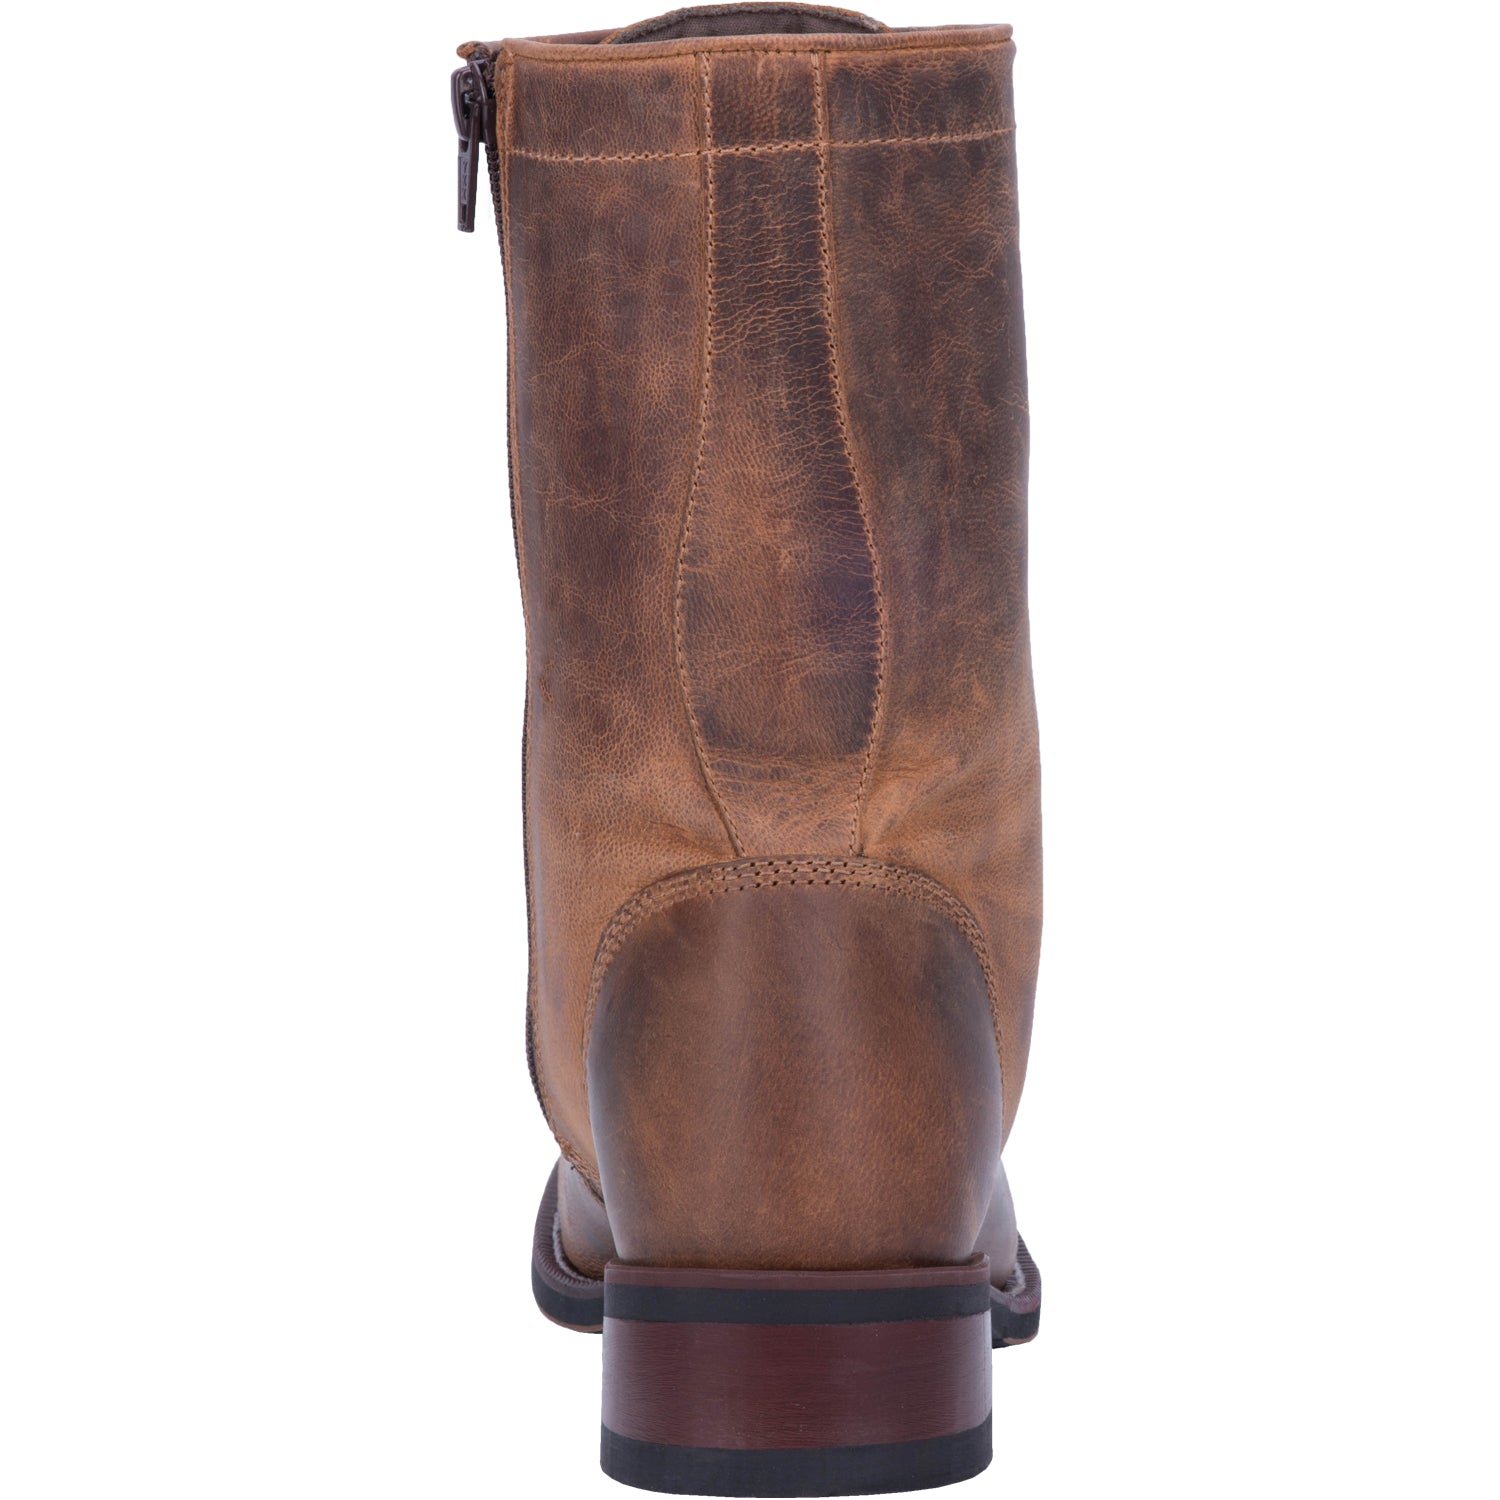 SARA ROSE LEATHER BOOT 4197170806826